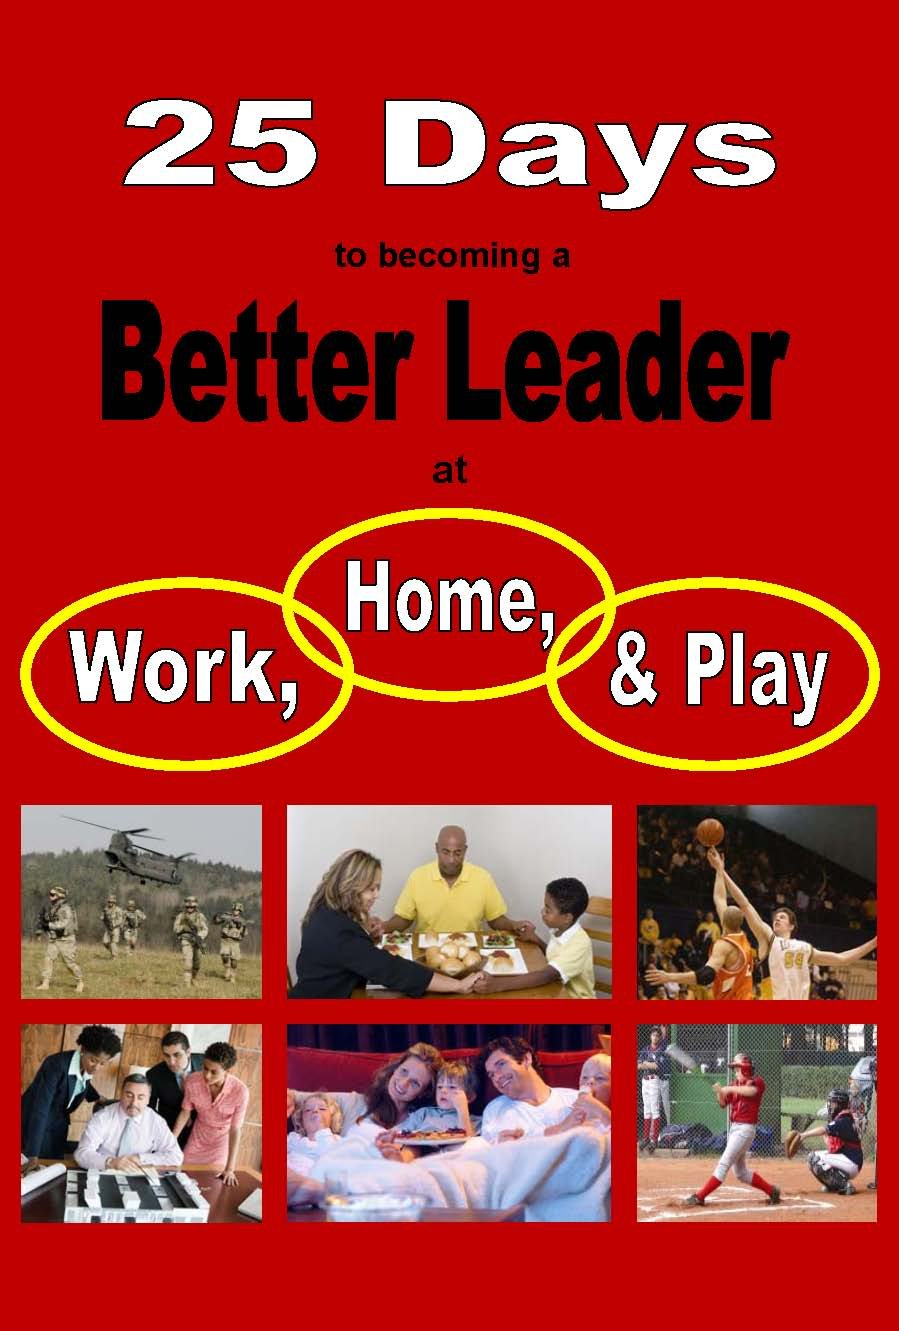 25 Days to becoming a Better Leader at Work, Home, and Play